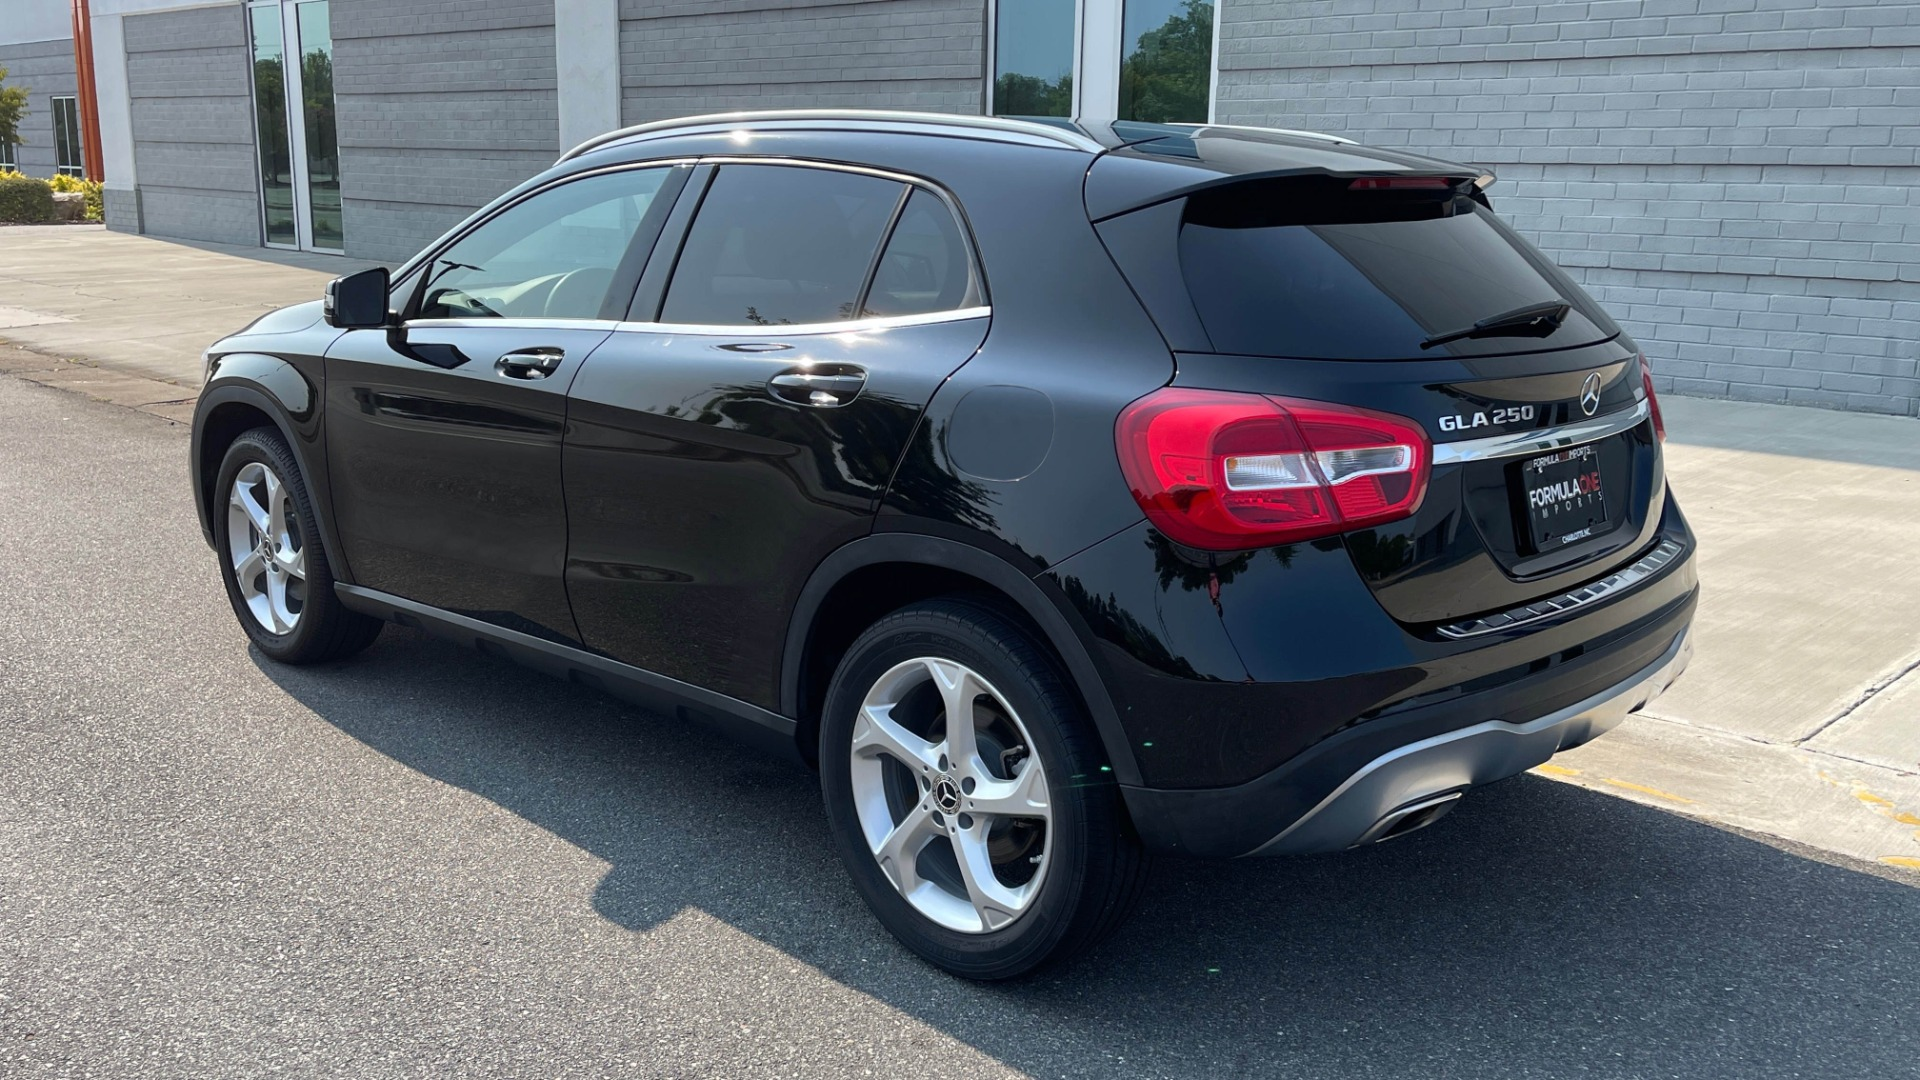 Used 2018 Mercedes-Benz GLA 250 SUV / GARMIN MAP PILOT / 18IN WHEELS / REARVIEW for sale $26,995 at Formula Imports in Charlotte NC 28227 3